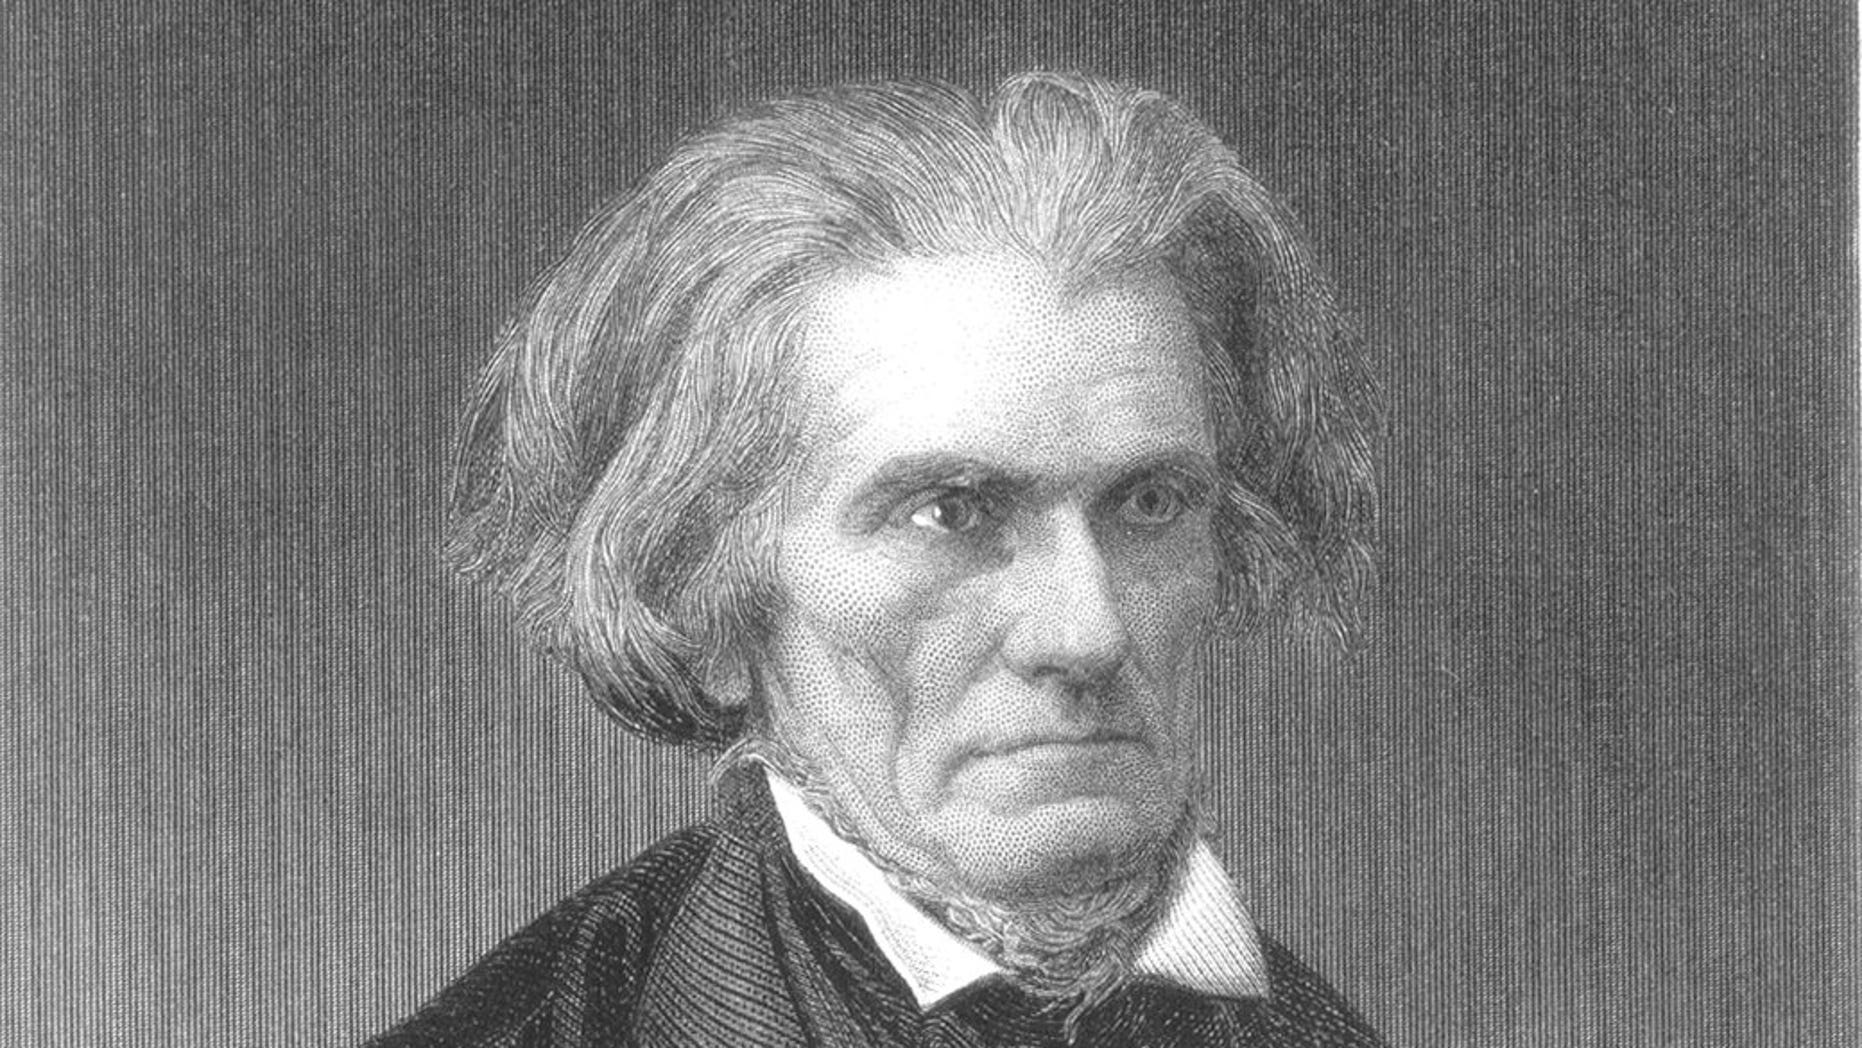 A 19th century portrait of John C. Calhoun.